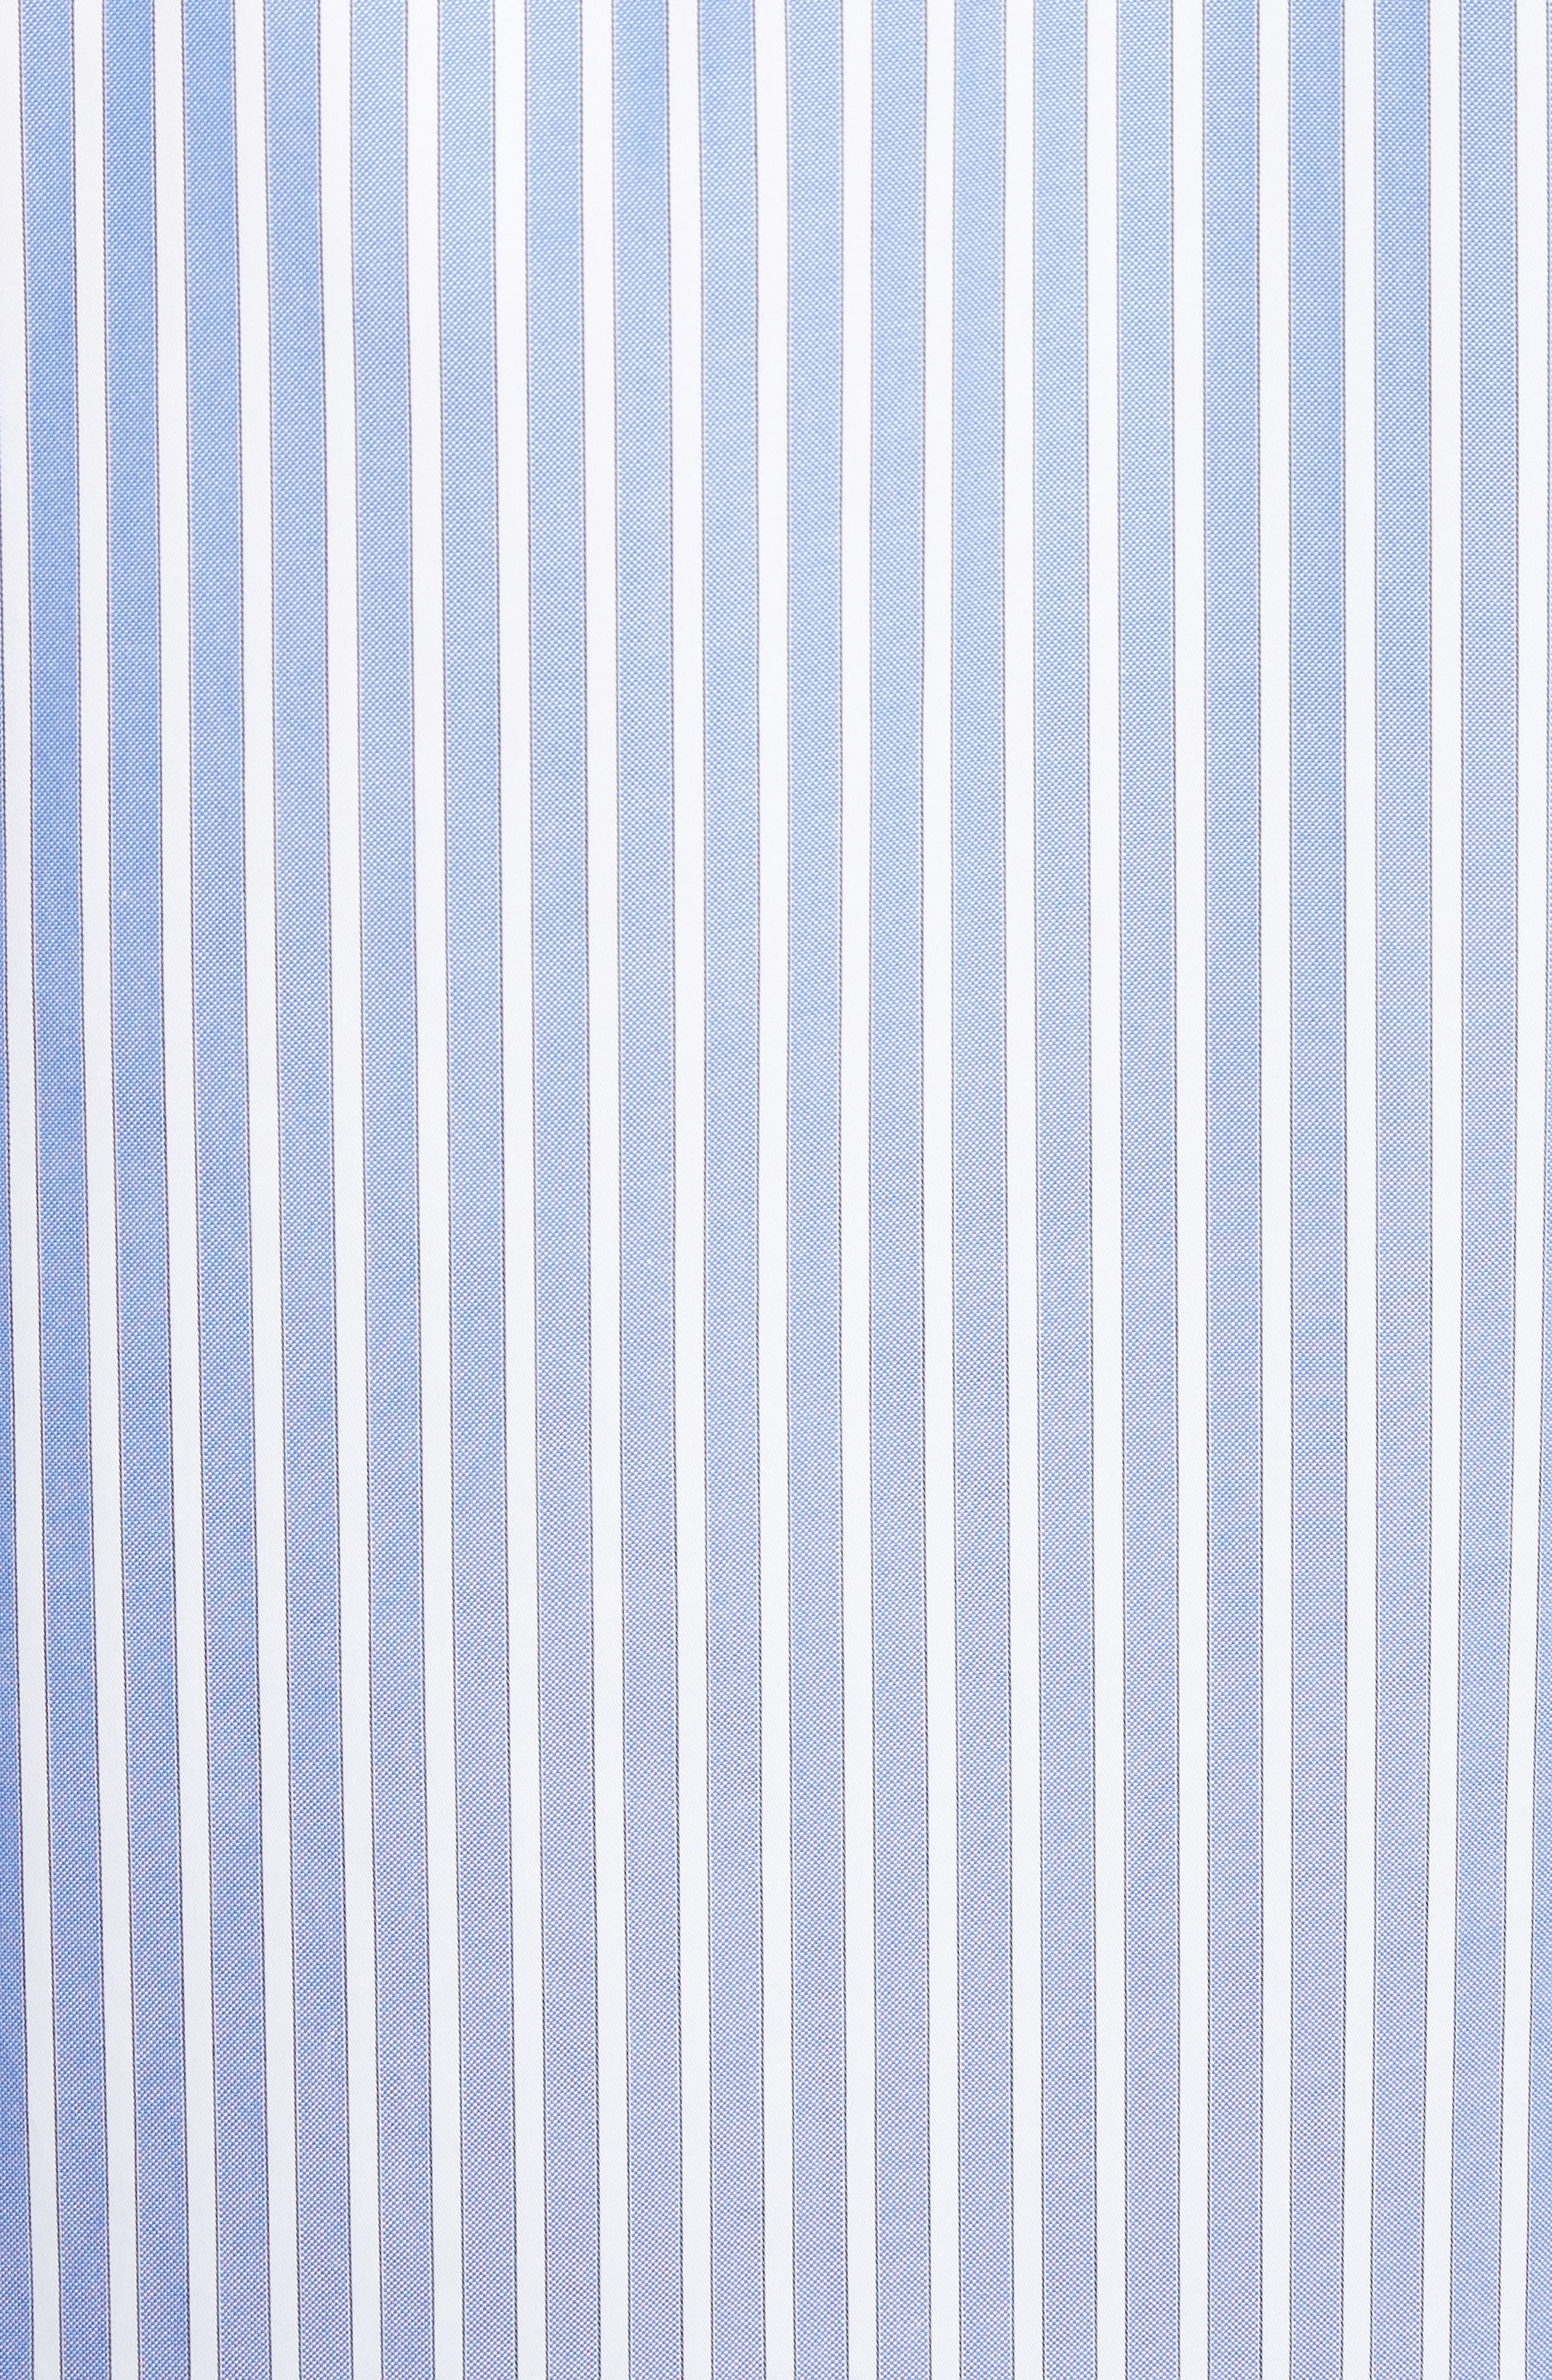 Bee Embroidered Stripe Dress Shirt,                             Alternate thumbnail 5, color,                             4869 Blue